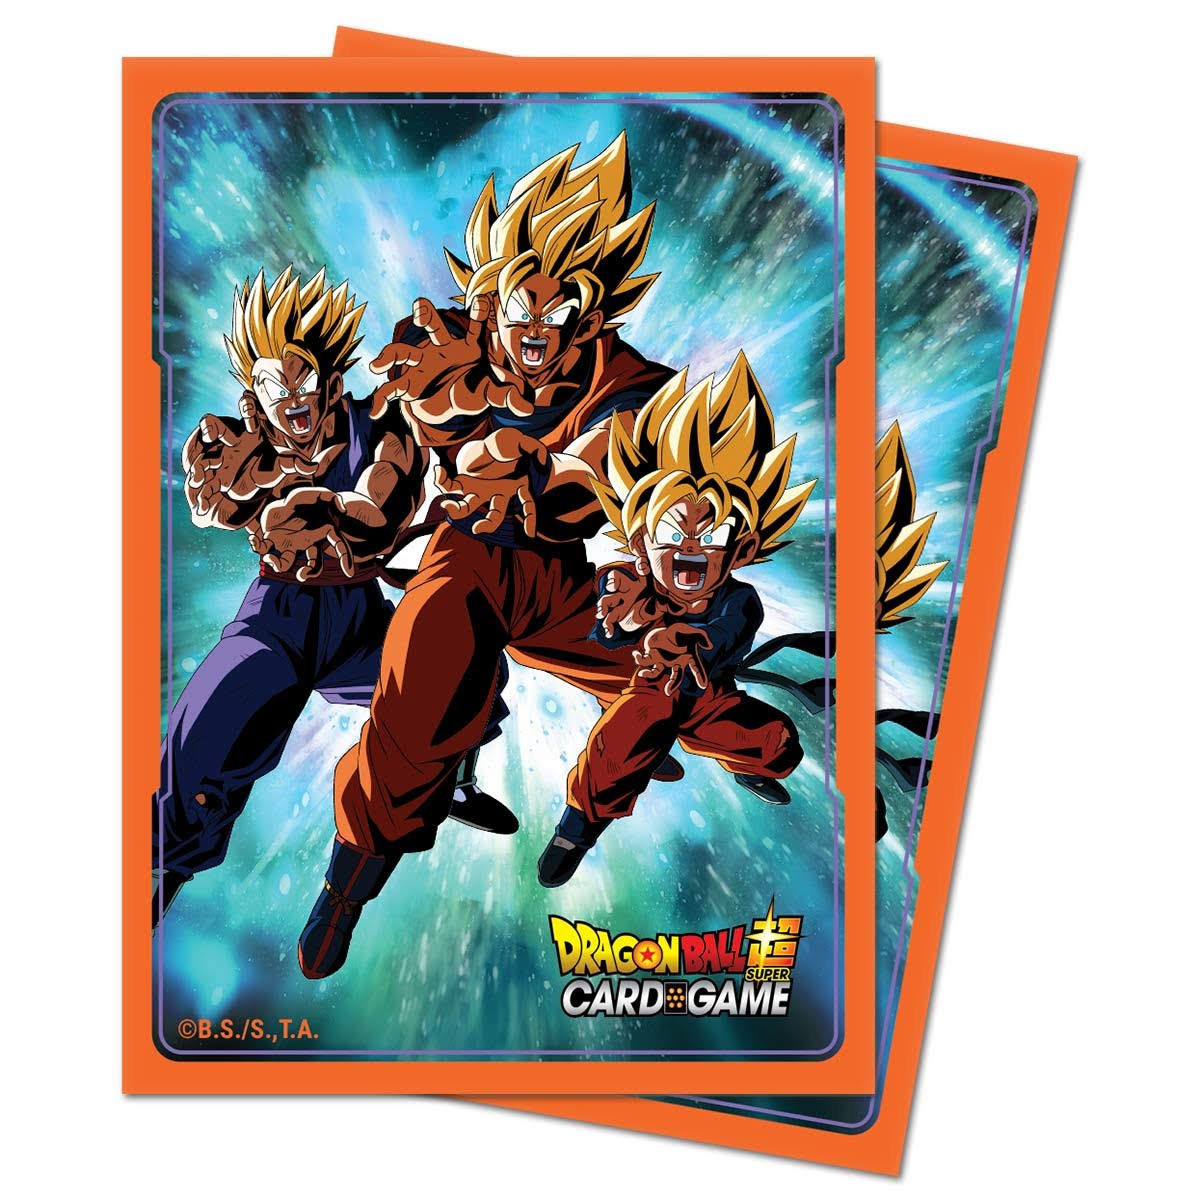 Ultra Pro Dragonball Super Deck Protectors - 65ct